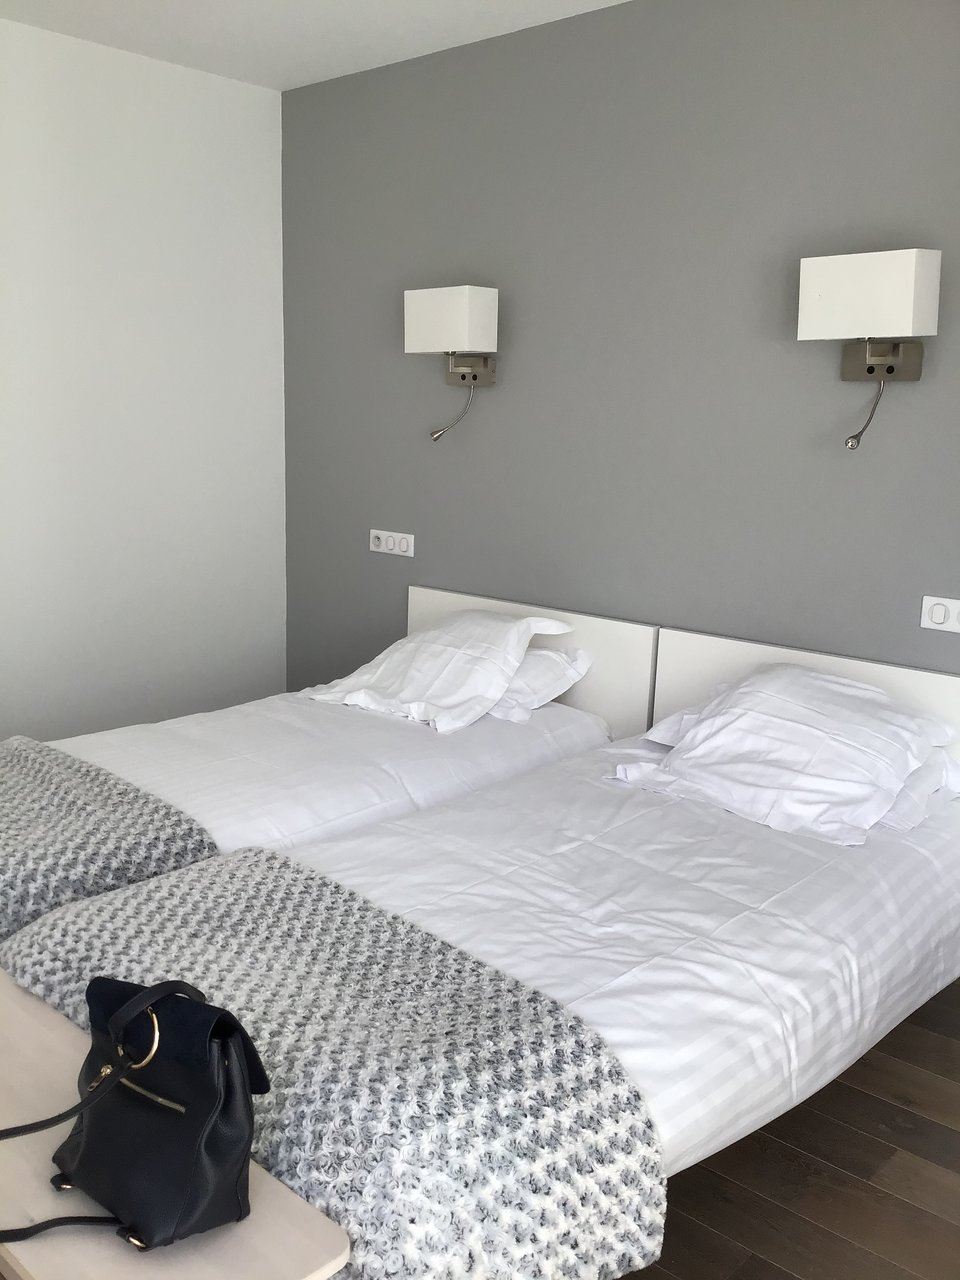 Chambre D'hotes Urdos 64490 Auberge Des Isards Lodge Reviews Aydius France Tripadvisor